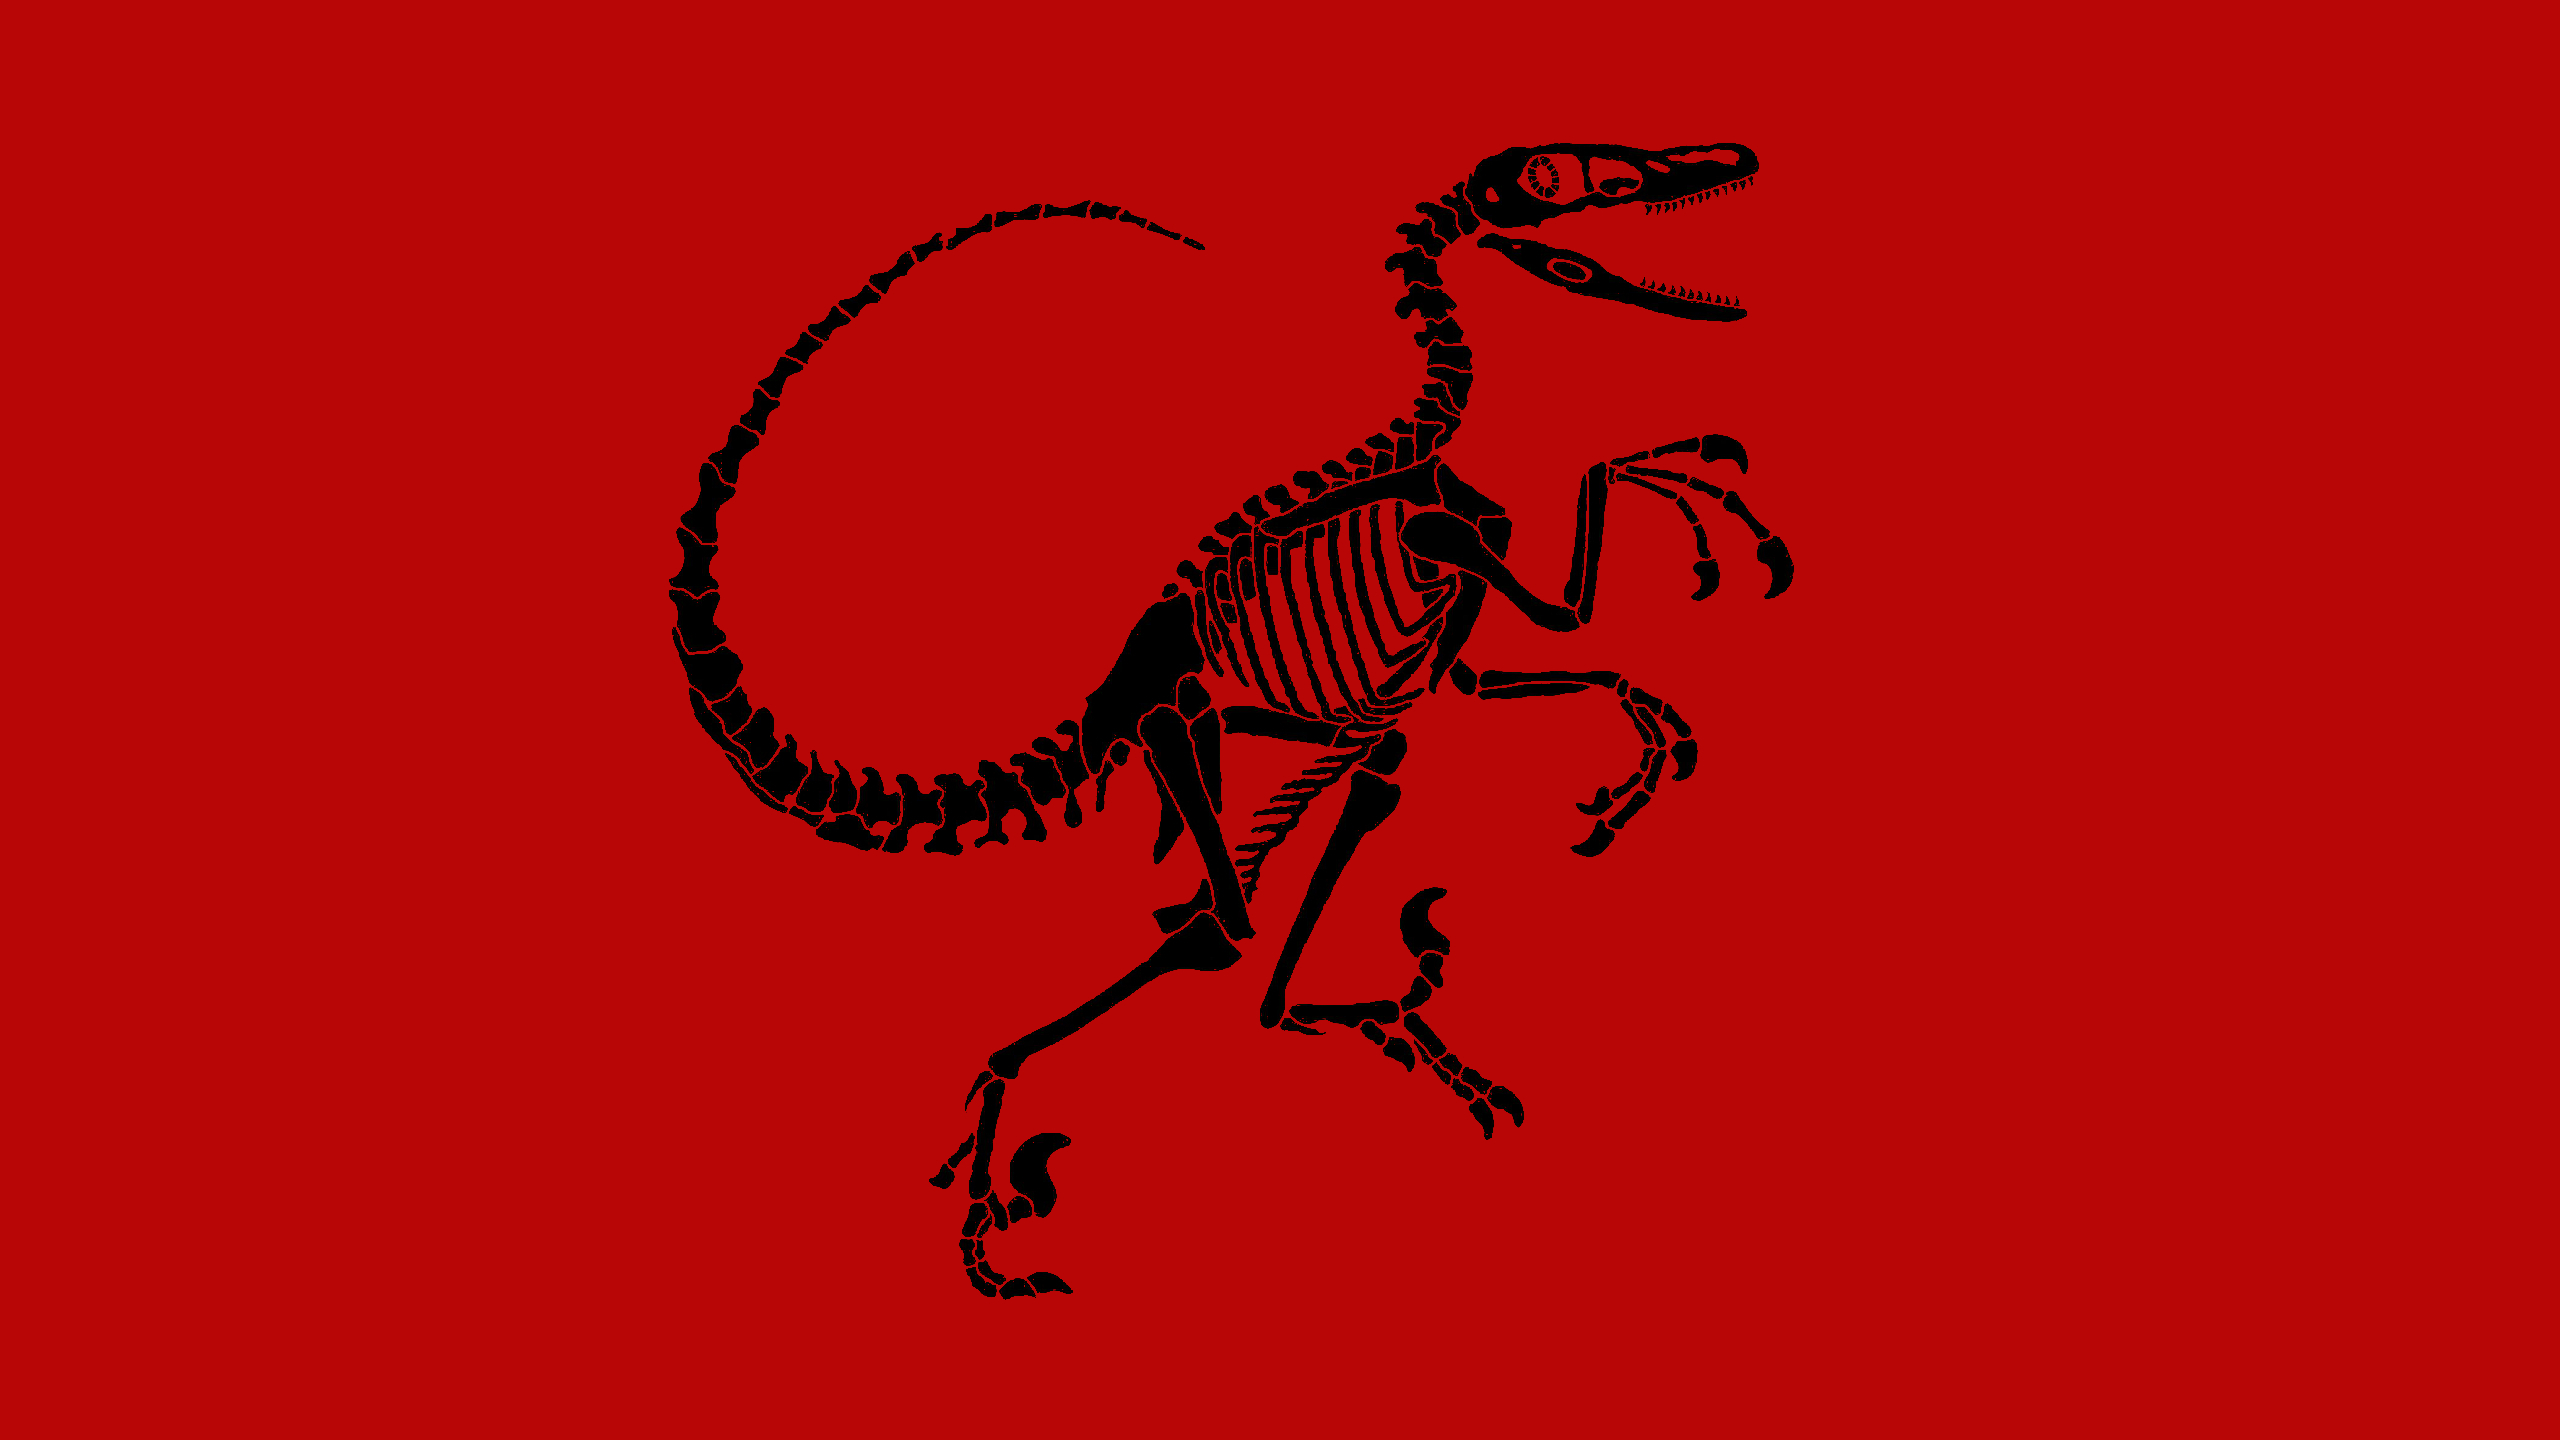 Velociraptor Wallpaper